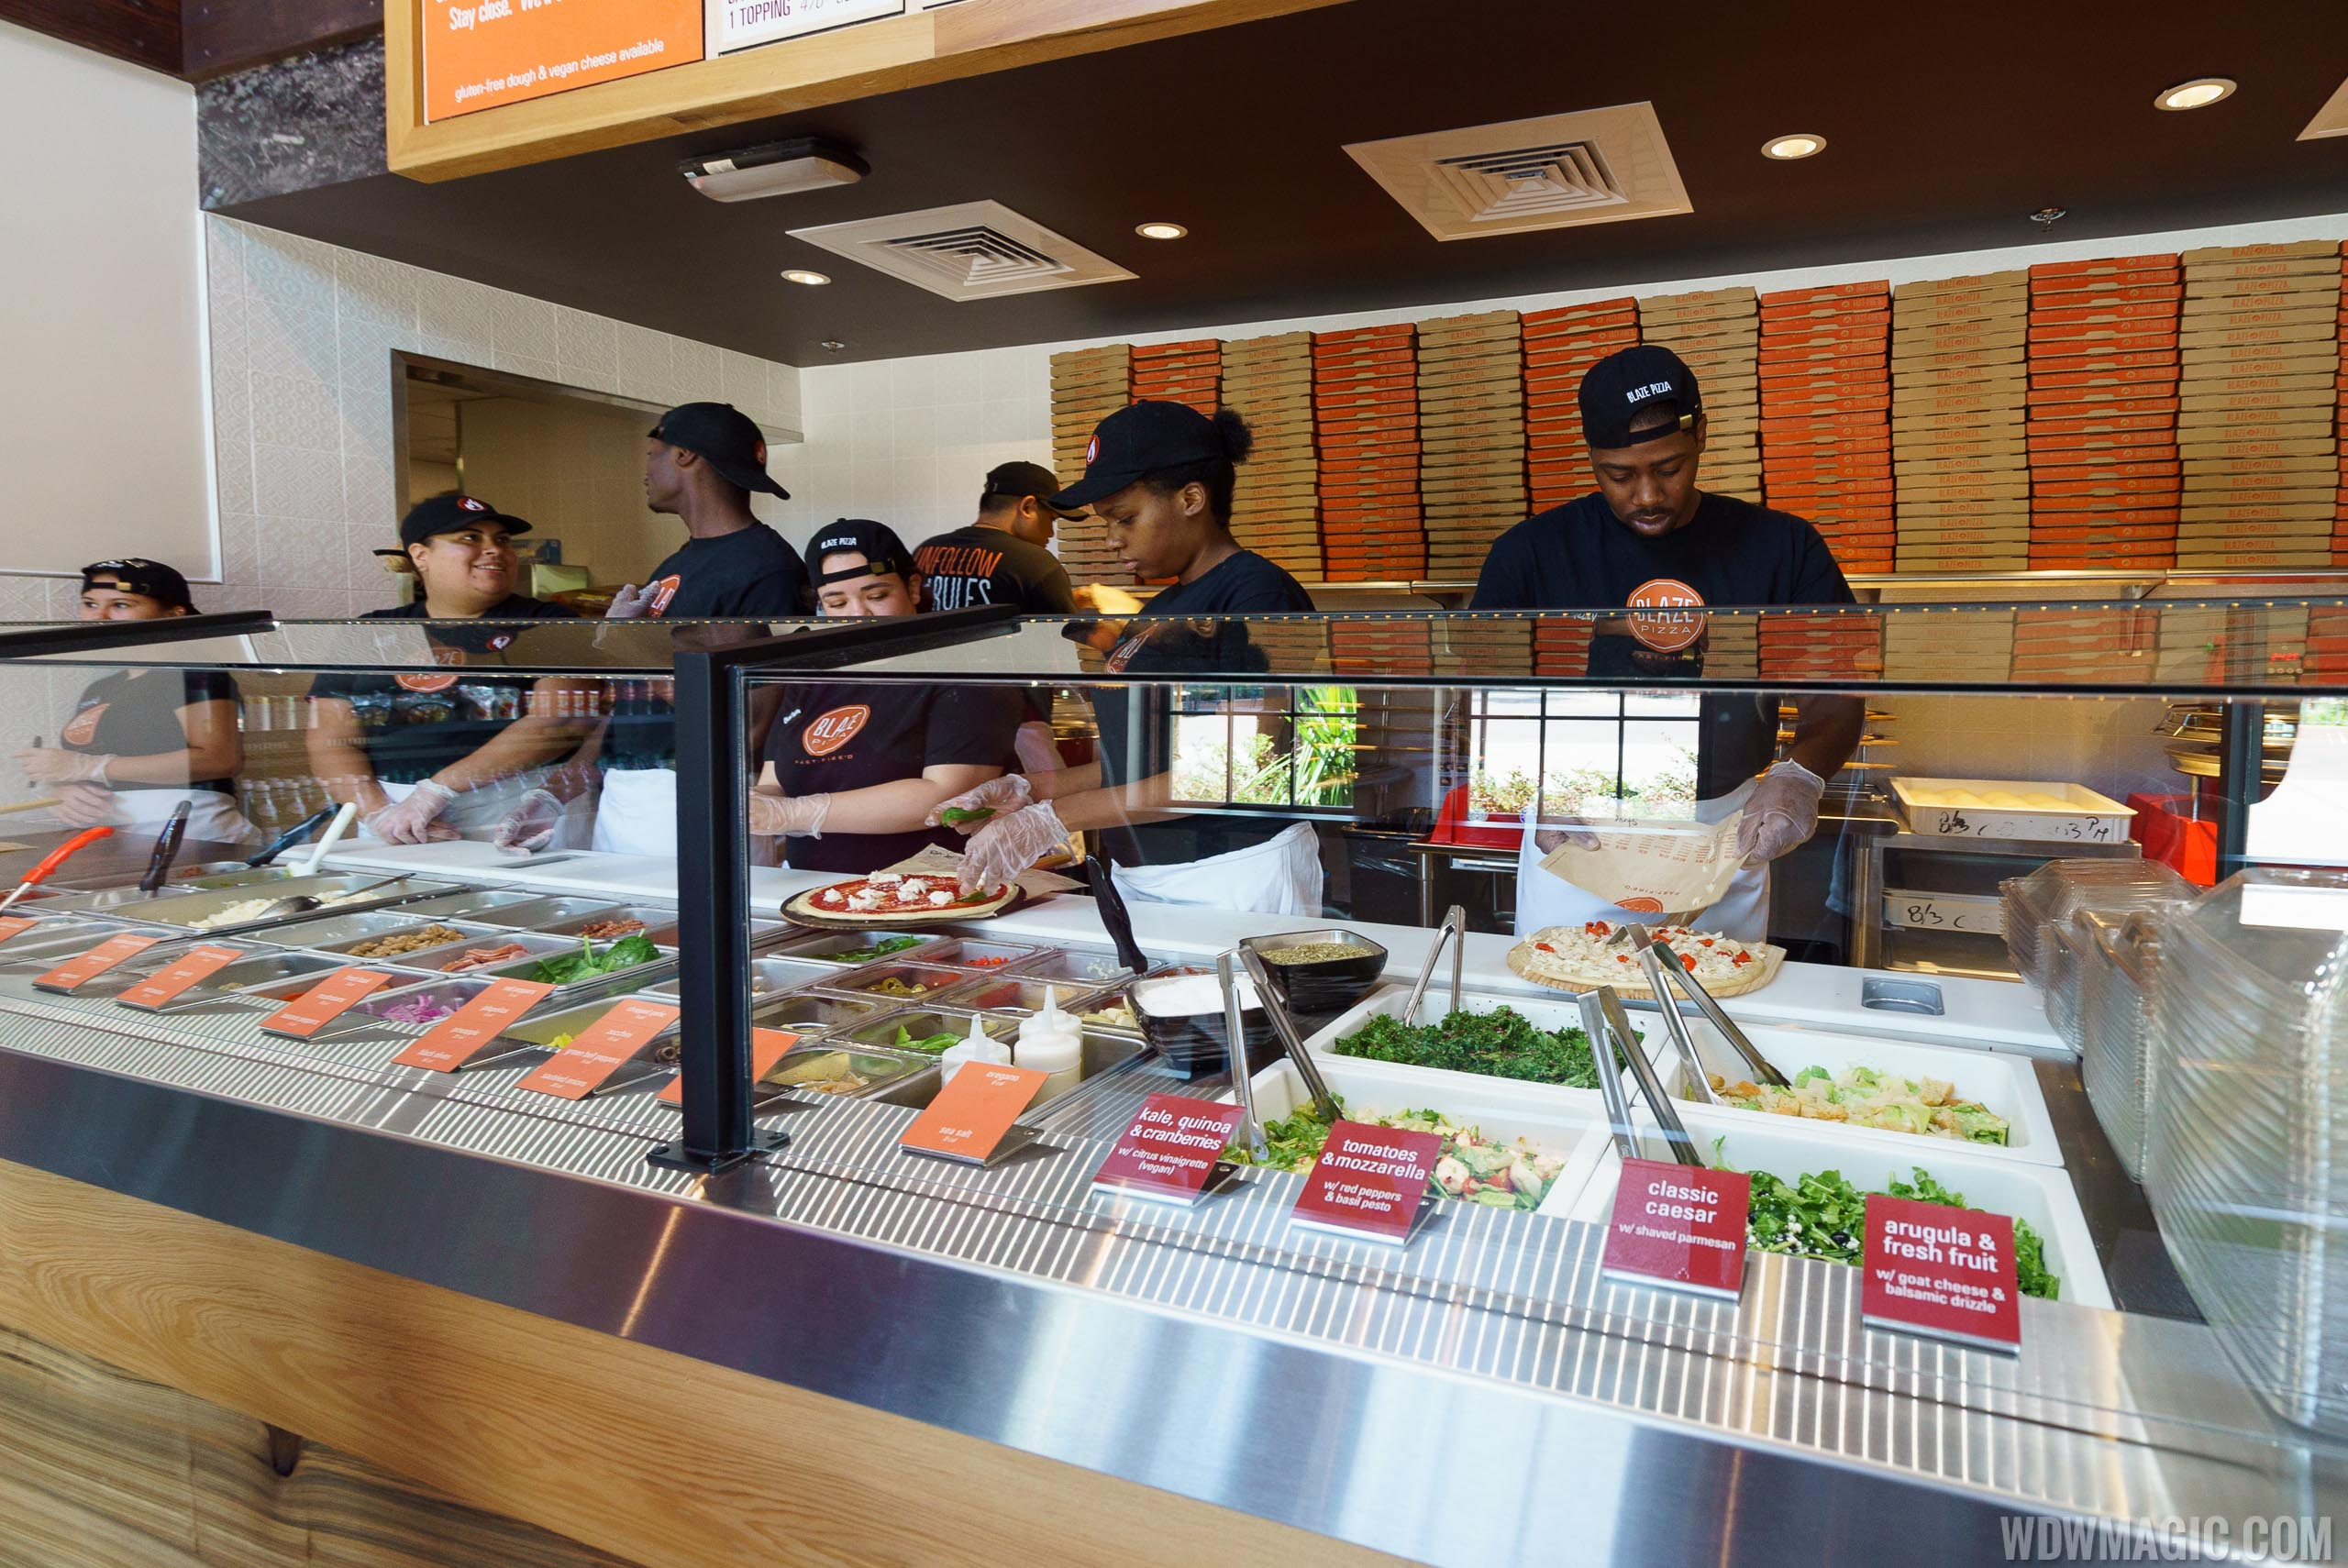 Blaze Pizza overview